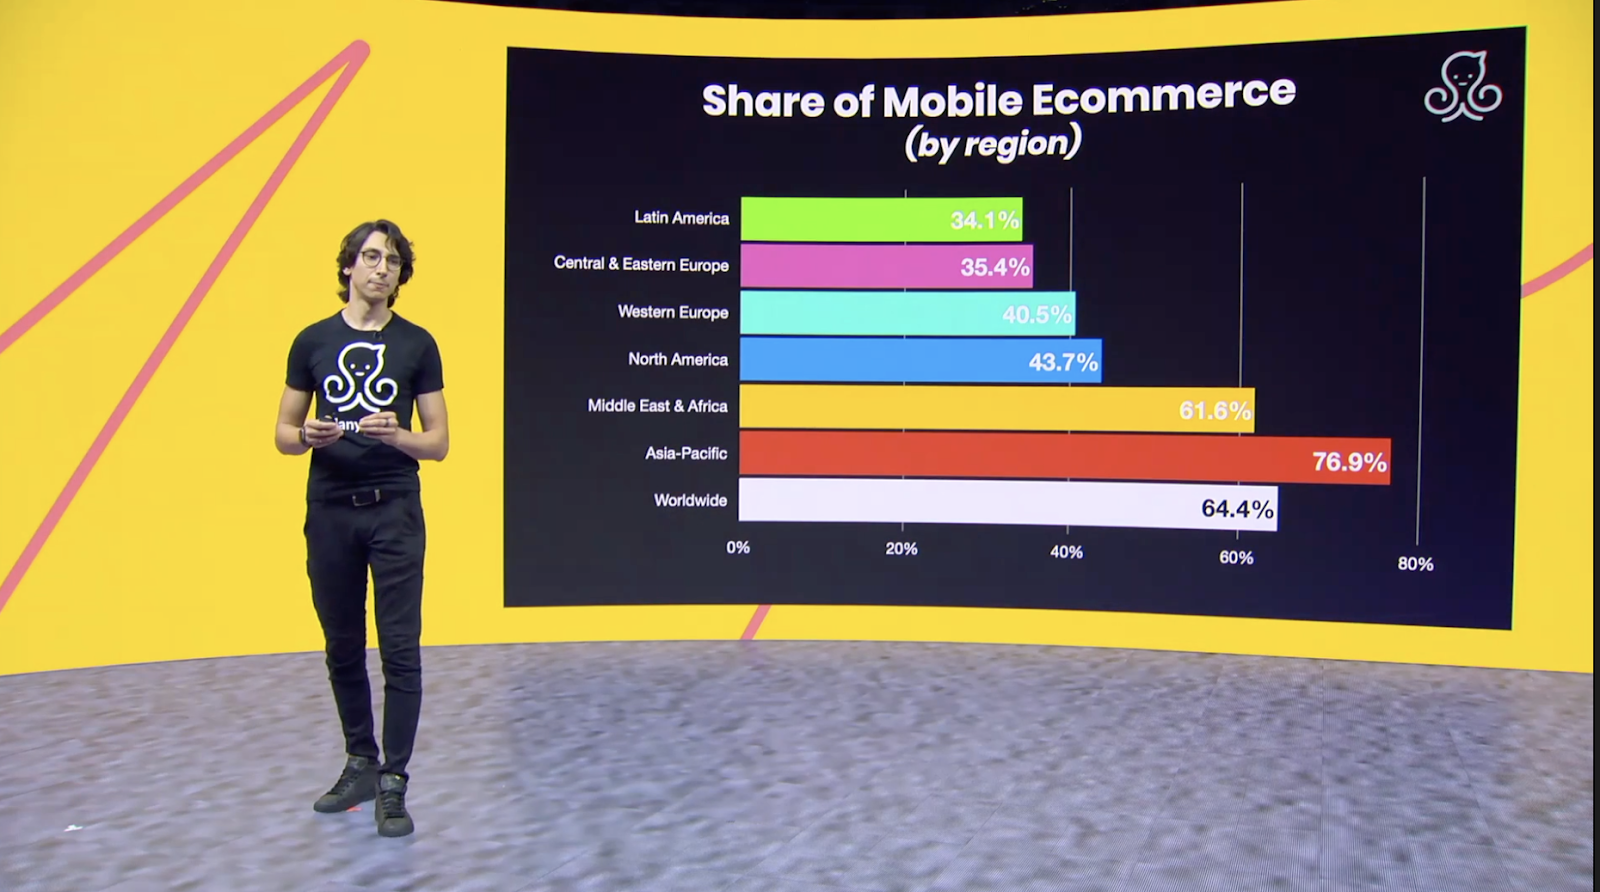 Share of mobile ecommerce stats at Conversations 2020